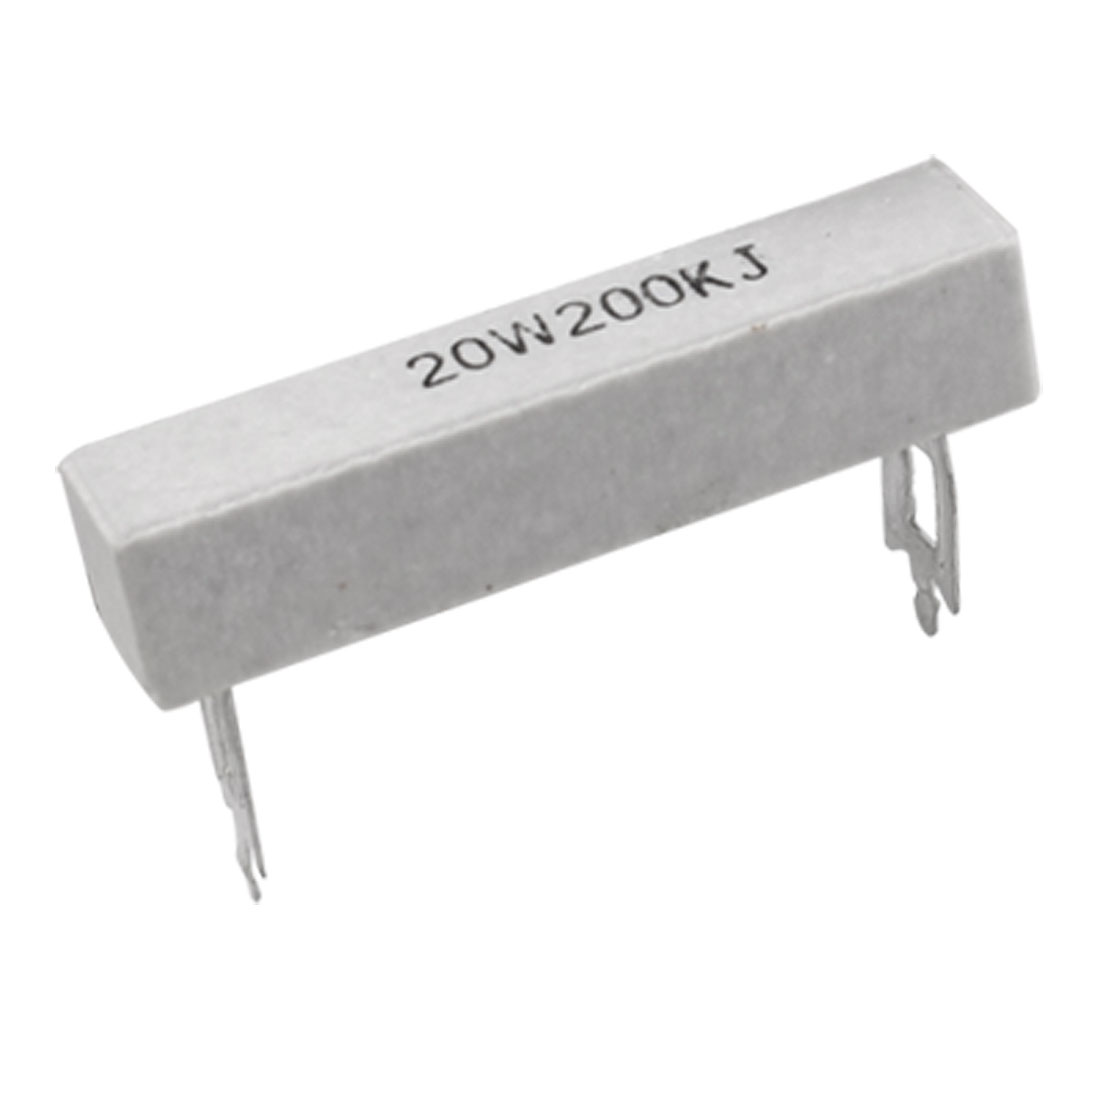 2 Pcs 20W 200K Ohm 5% Wire Wound Ceramic Cement Resistors